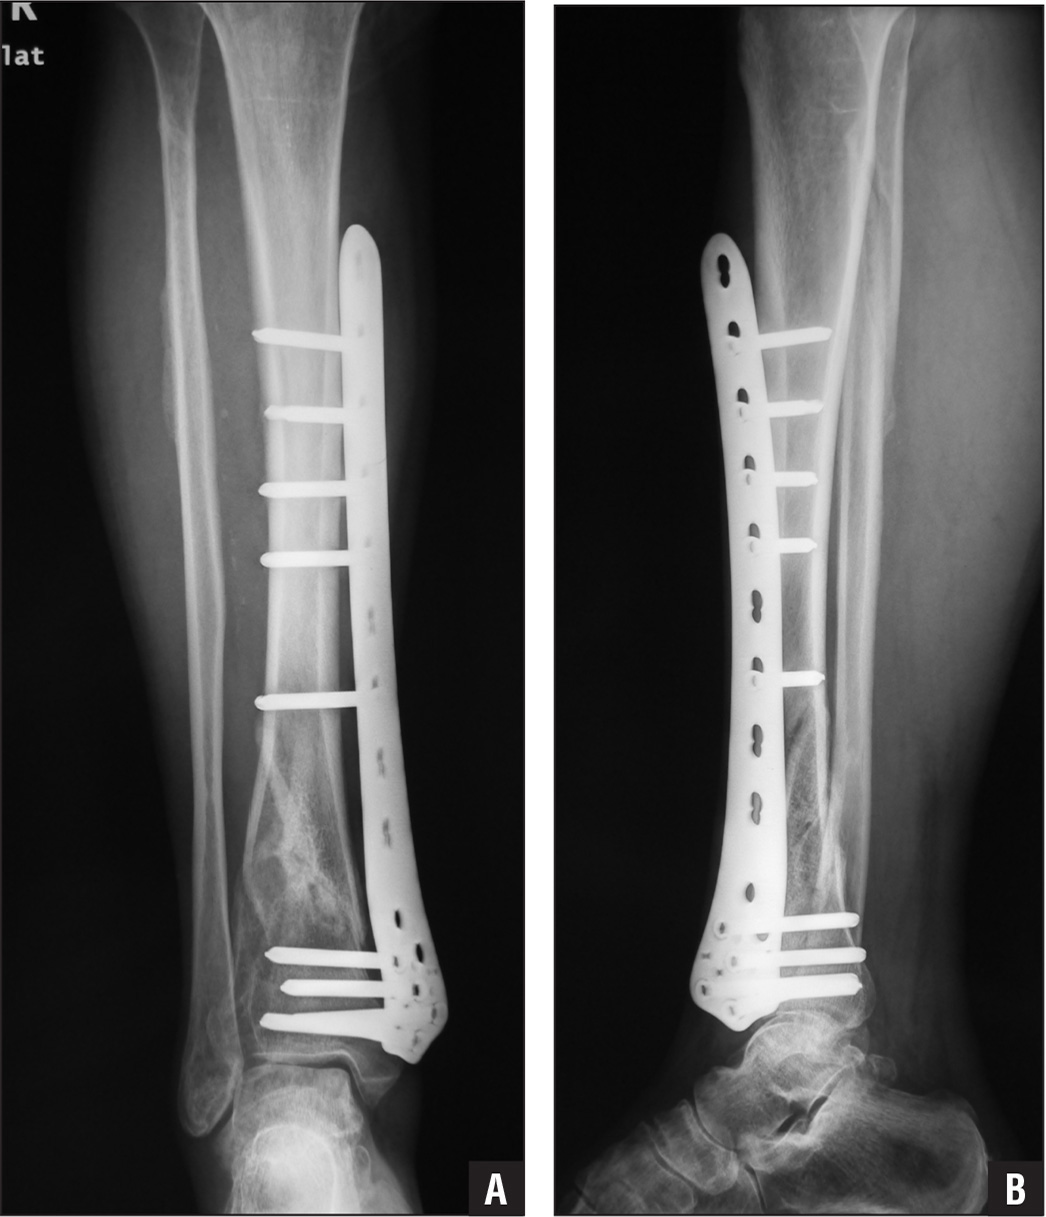 Three-month postoperative anteroposterior (A) and lateral (B) radiographs showing fracture union.